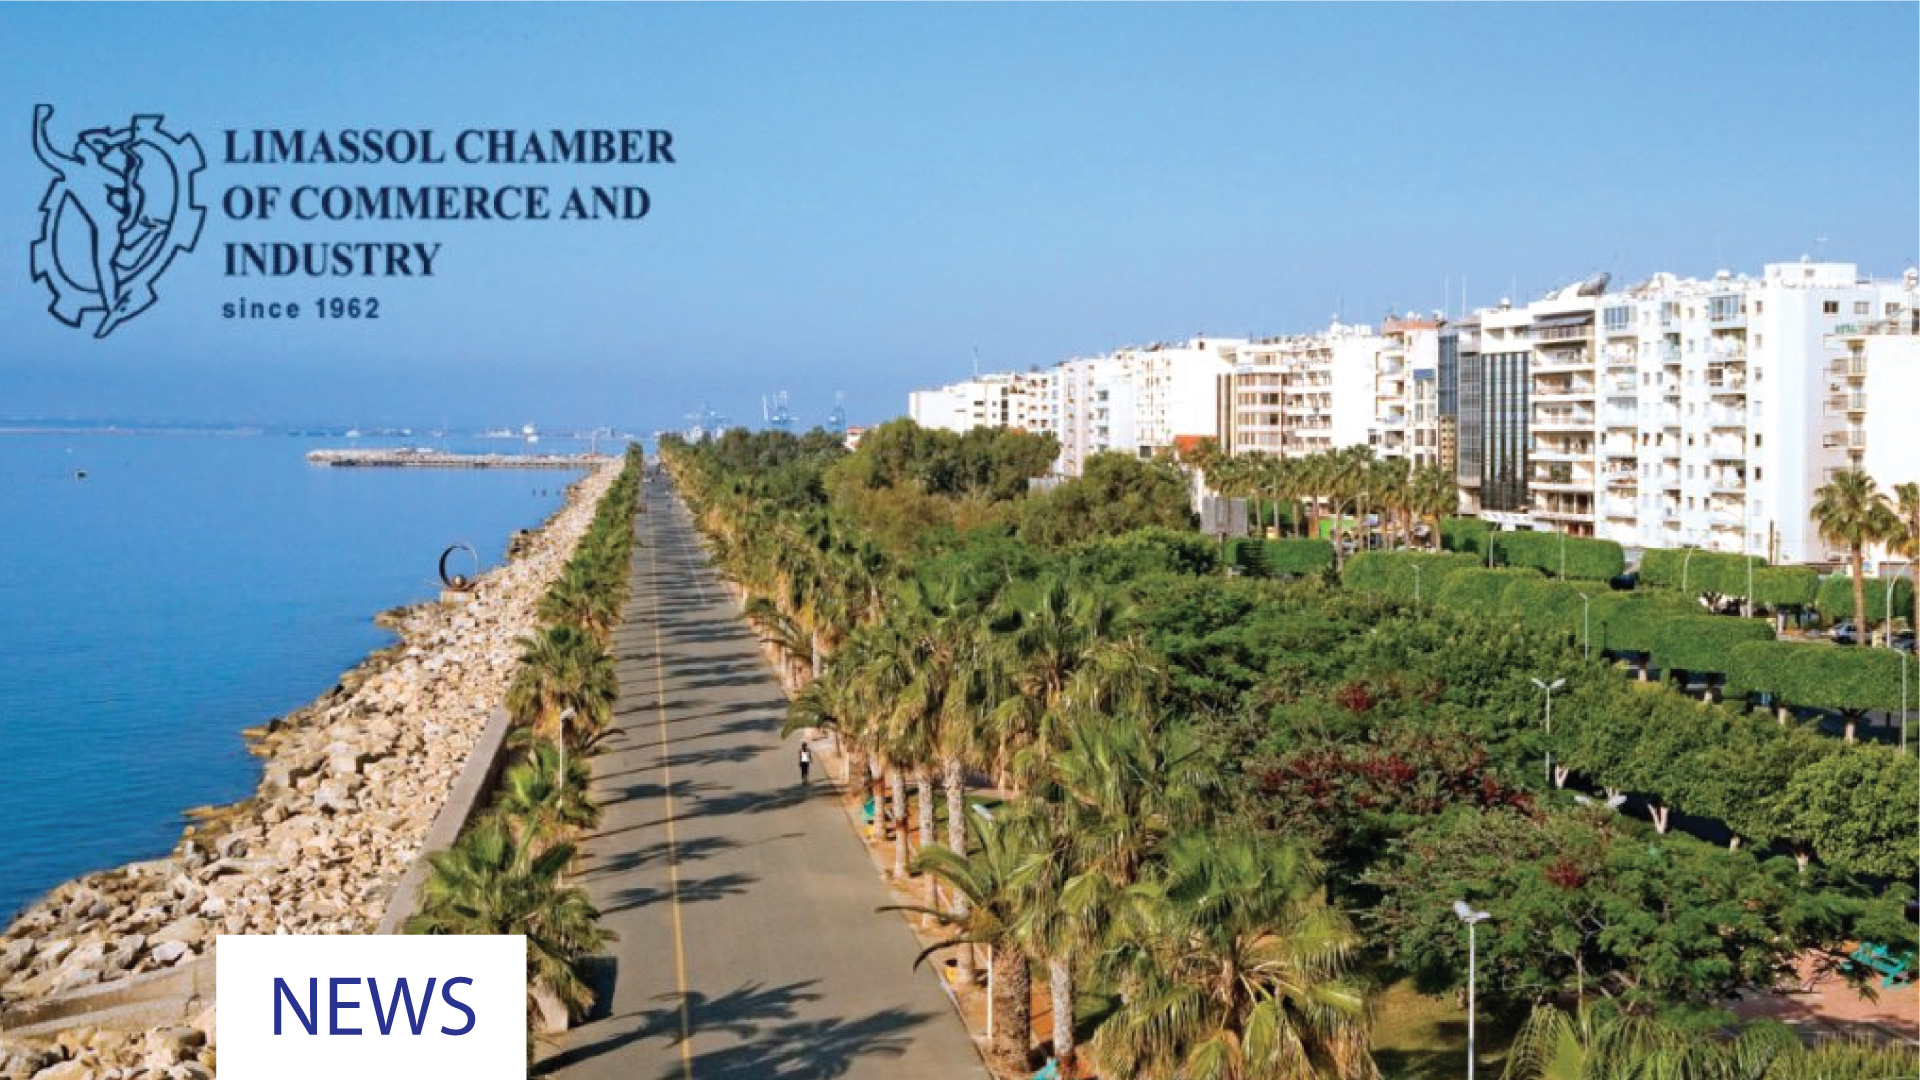 NEW BOARD OF DIRECTORS FOR THE LIMASSOL CHAMBER OF COMMERCE AND INDUSTRY